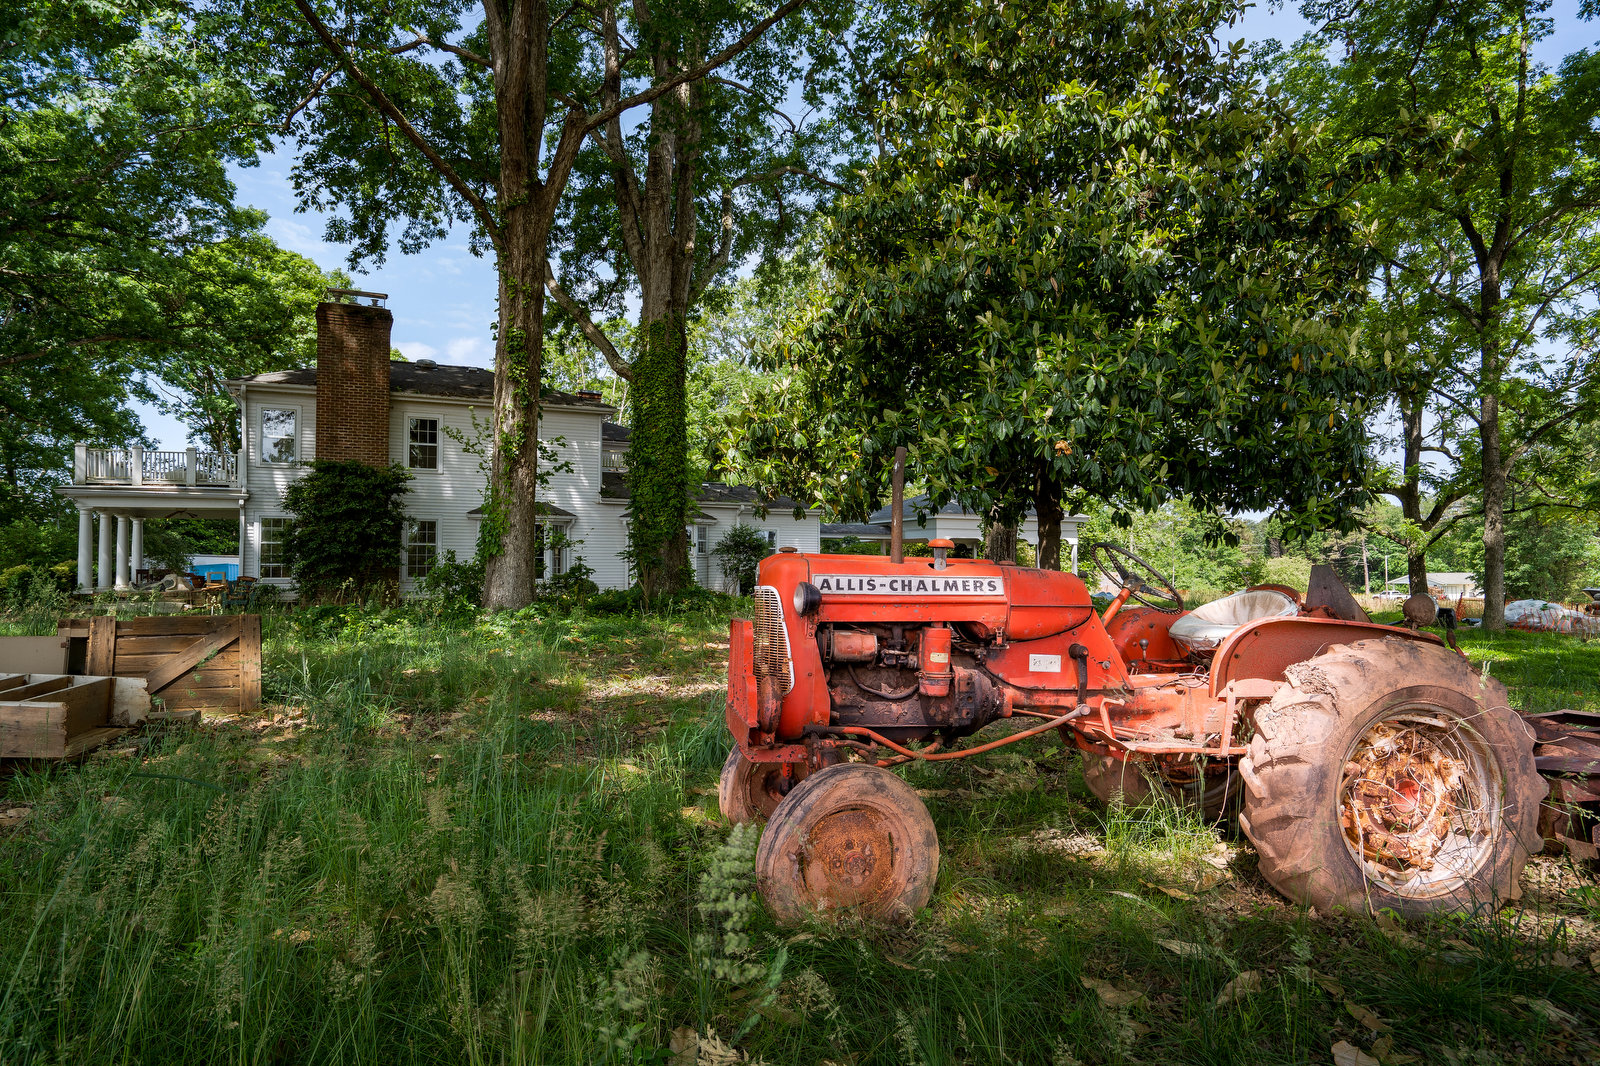 Allis-Chalmers tractor found on the property of 13828 Beatties Ford Road.